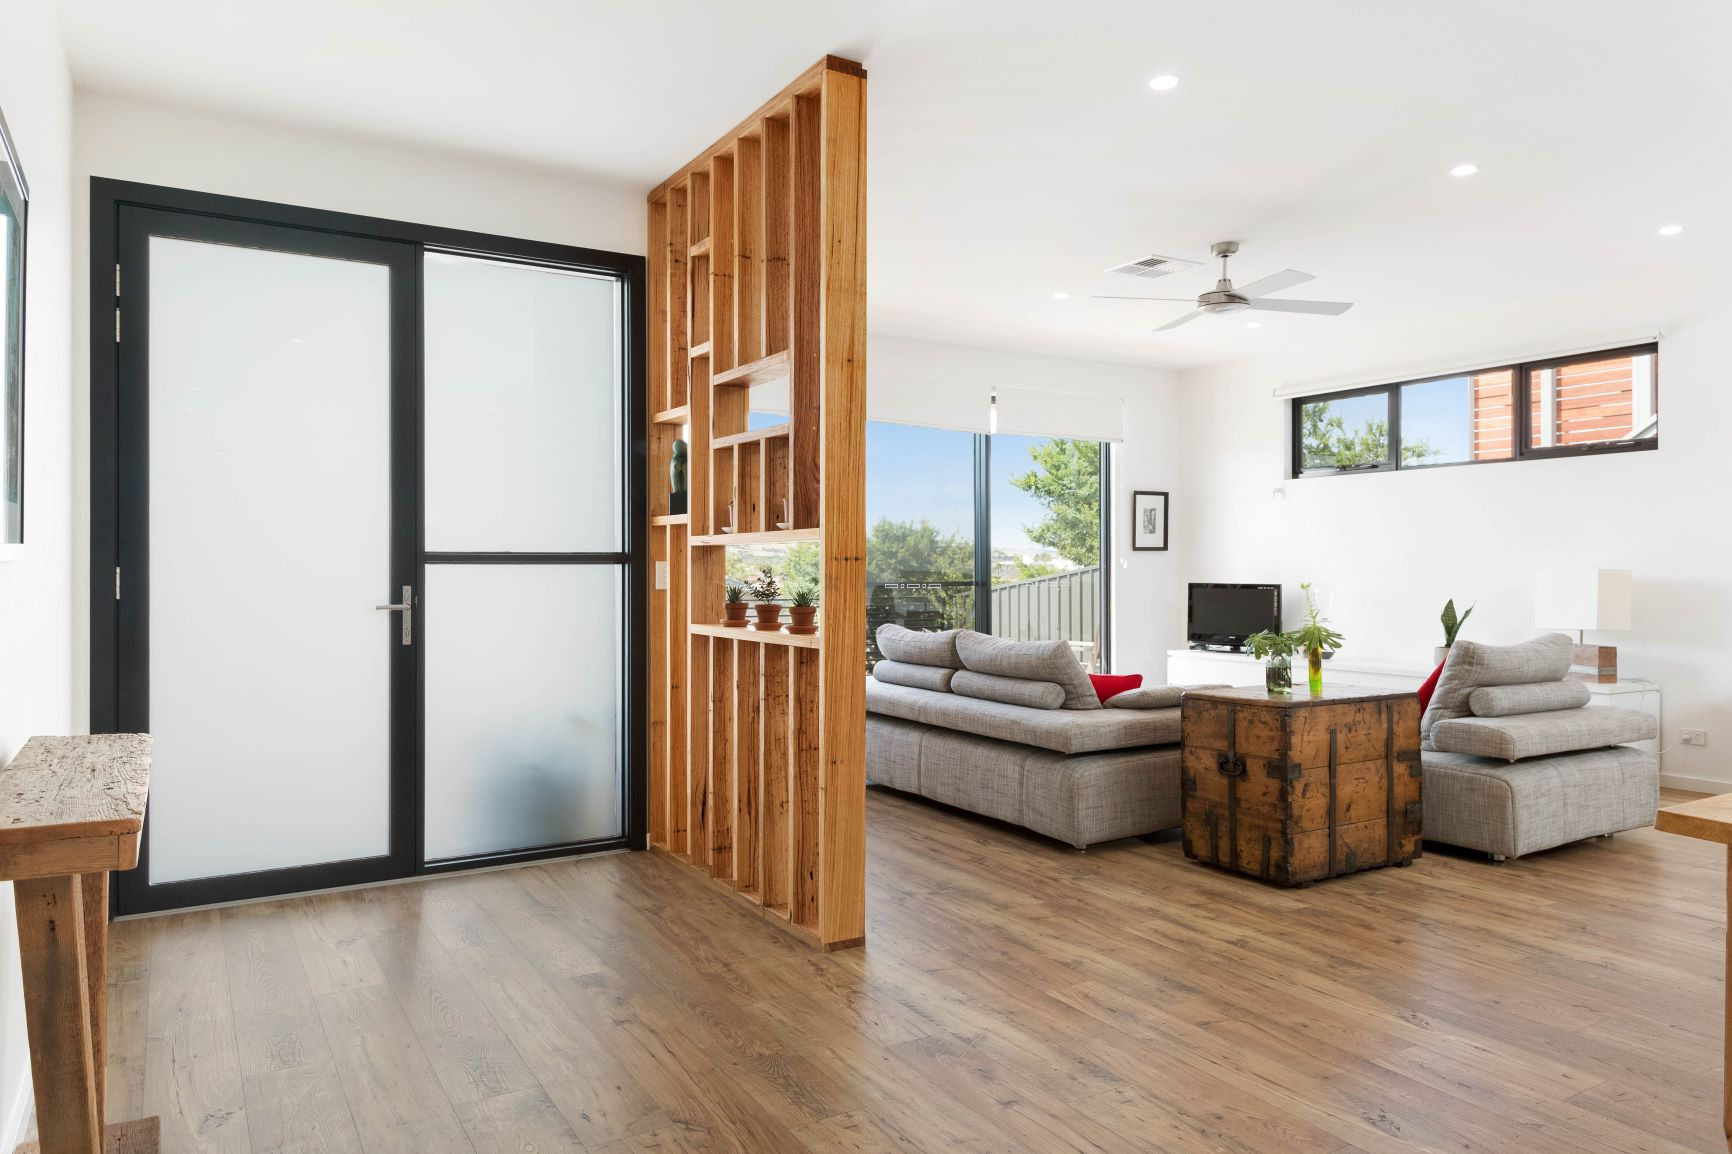 Custom Home, New Home, Single Storey Home, Builders, Design, Port Elliot, Fleurieu, Living Area, Feature Wall, Frosted Glass Door, Laminated Floor